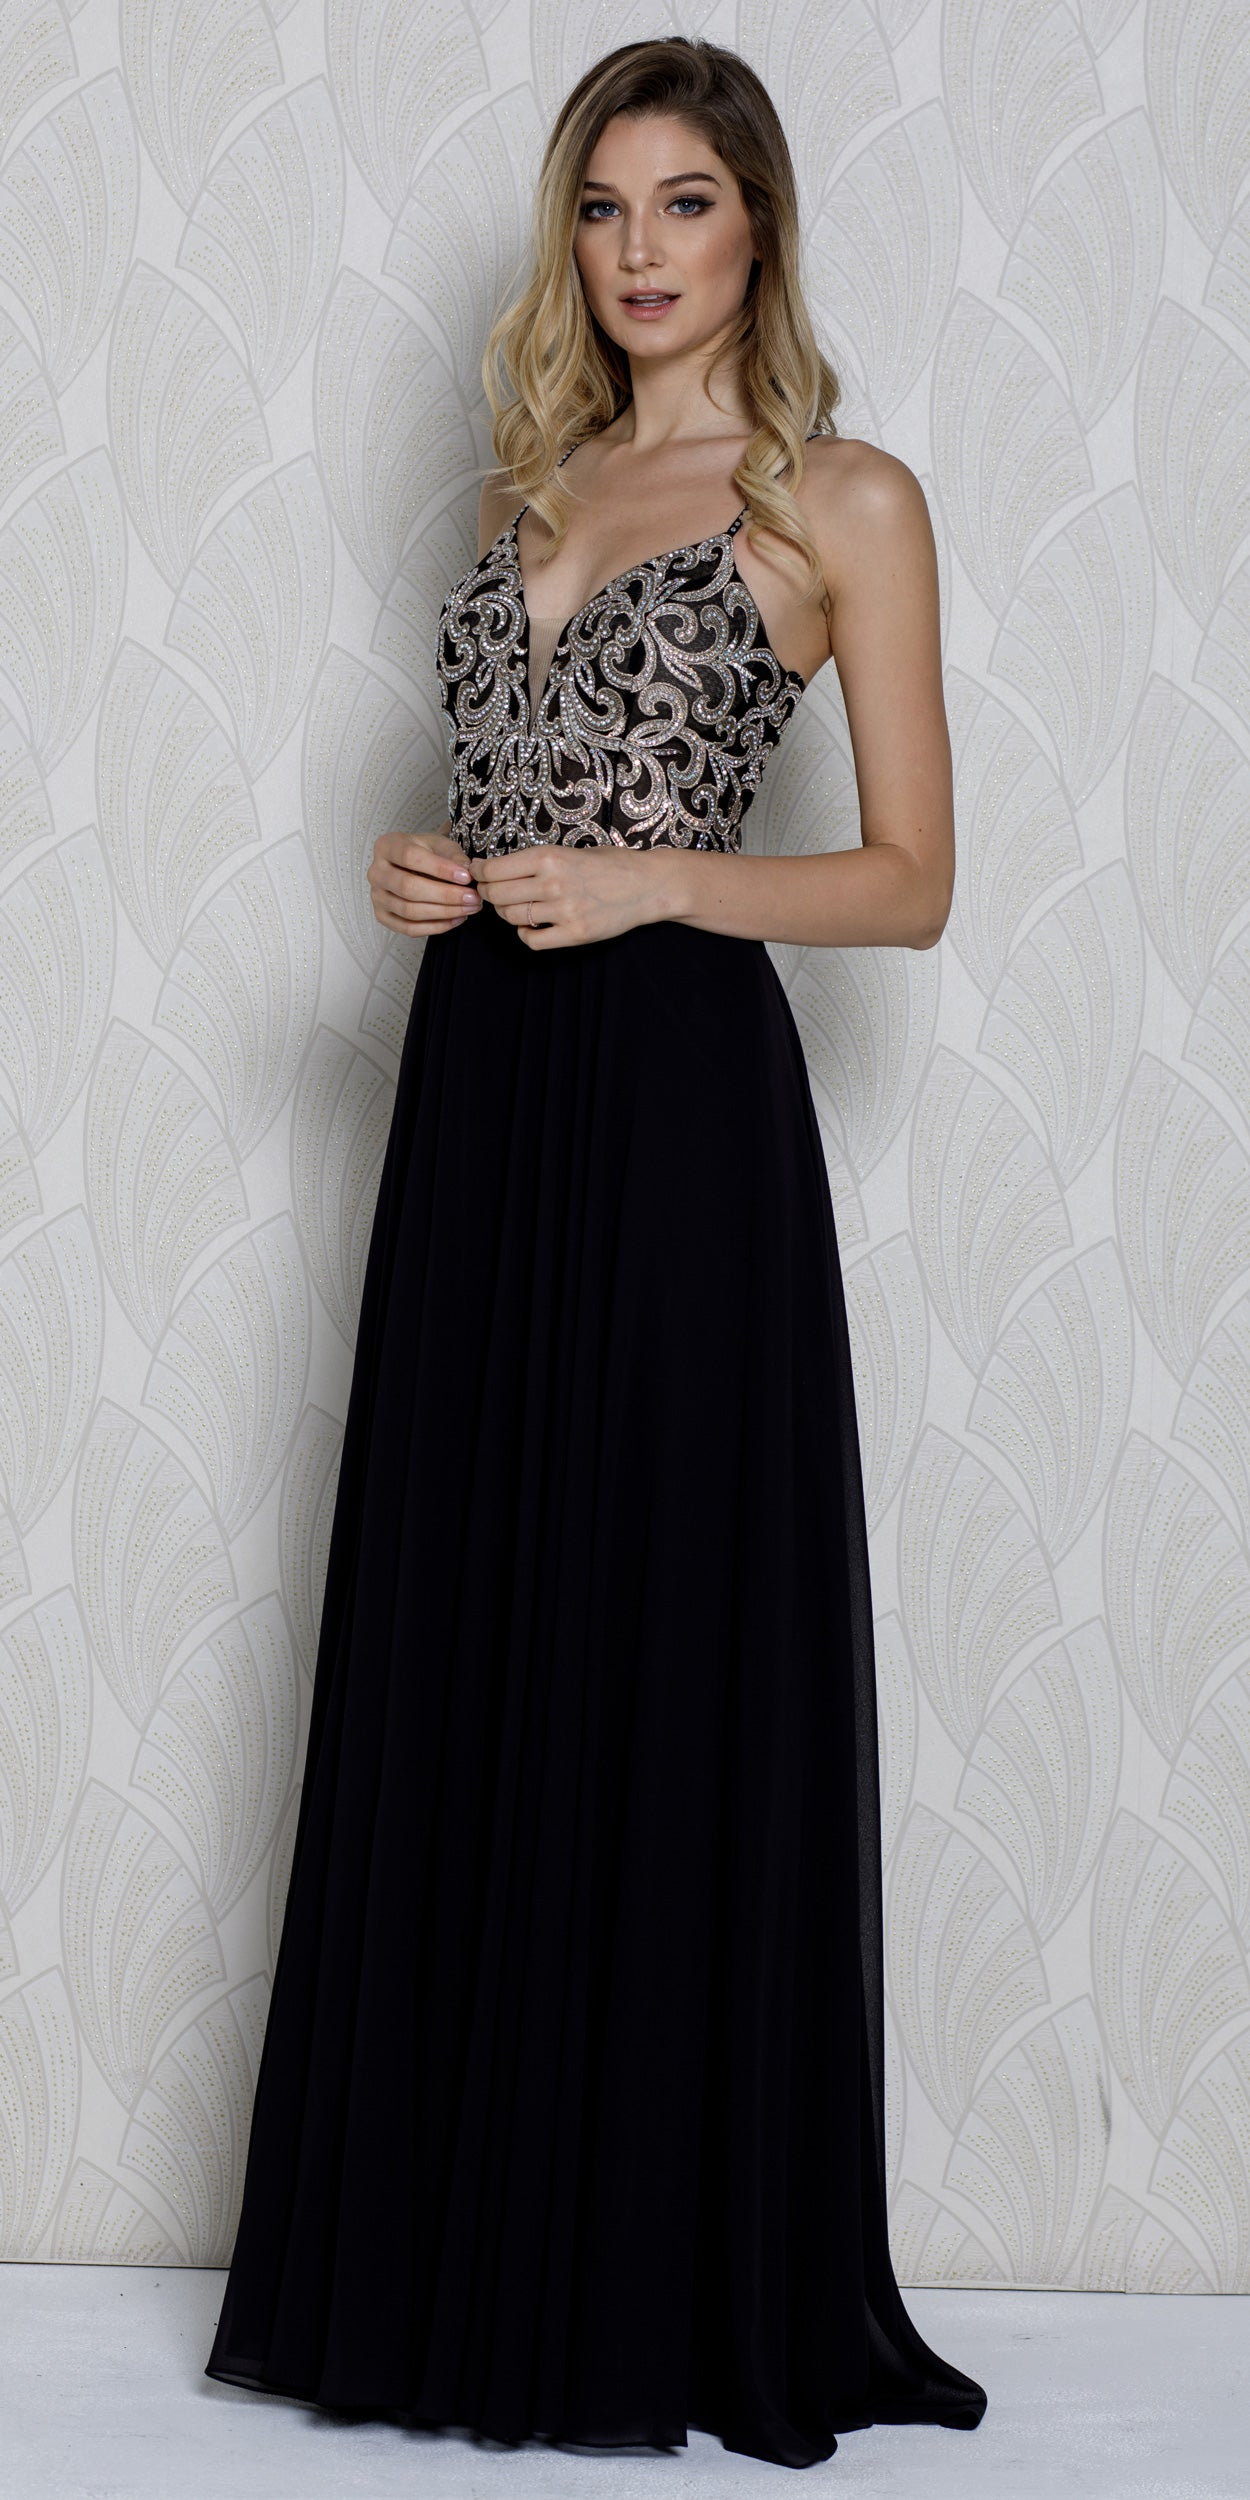 Main image of V-neck Beaded Lace Bodice Long Formal Prom Dress